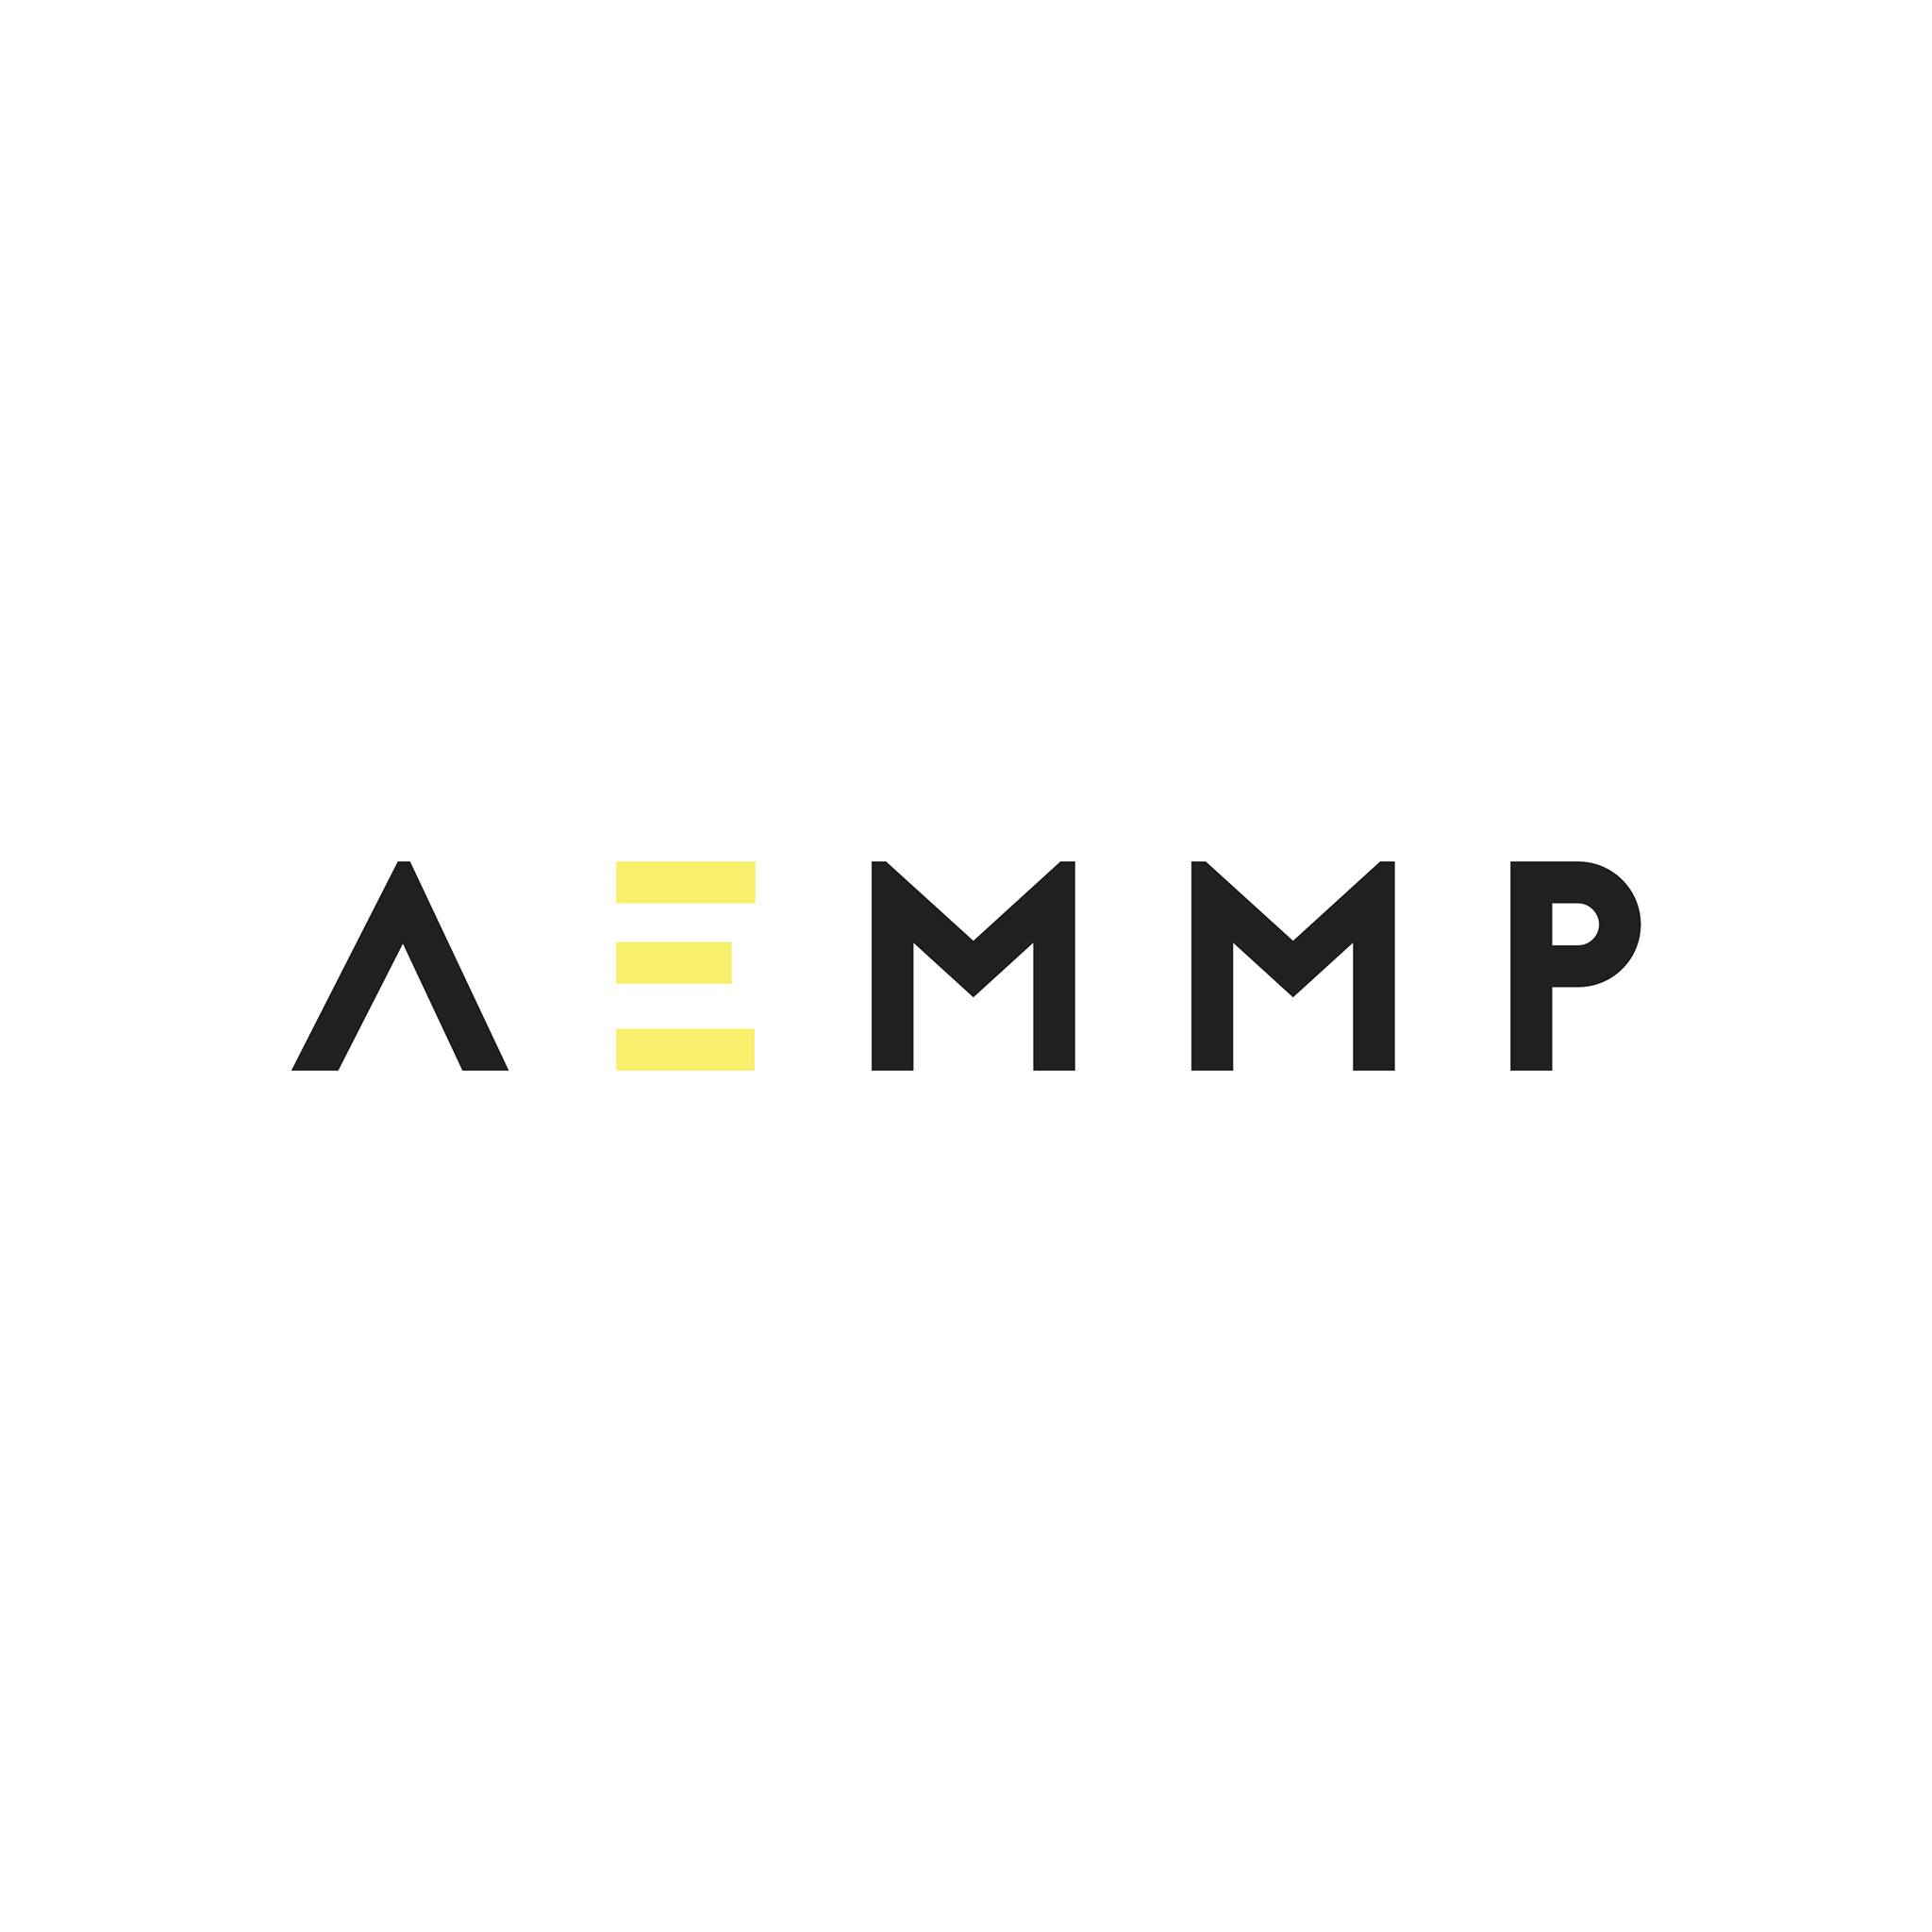 Course Spotlight: AEMMP Hip-Hop